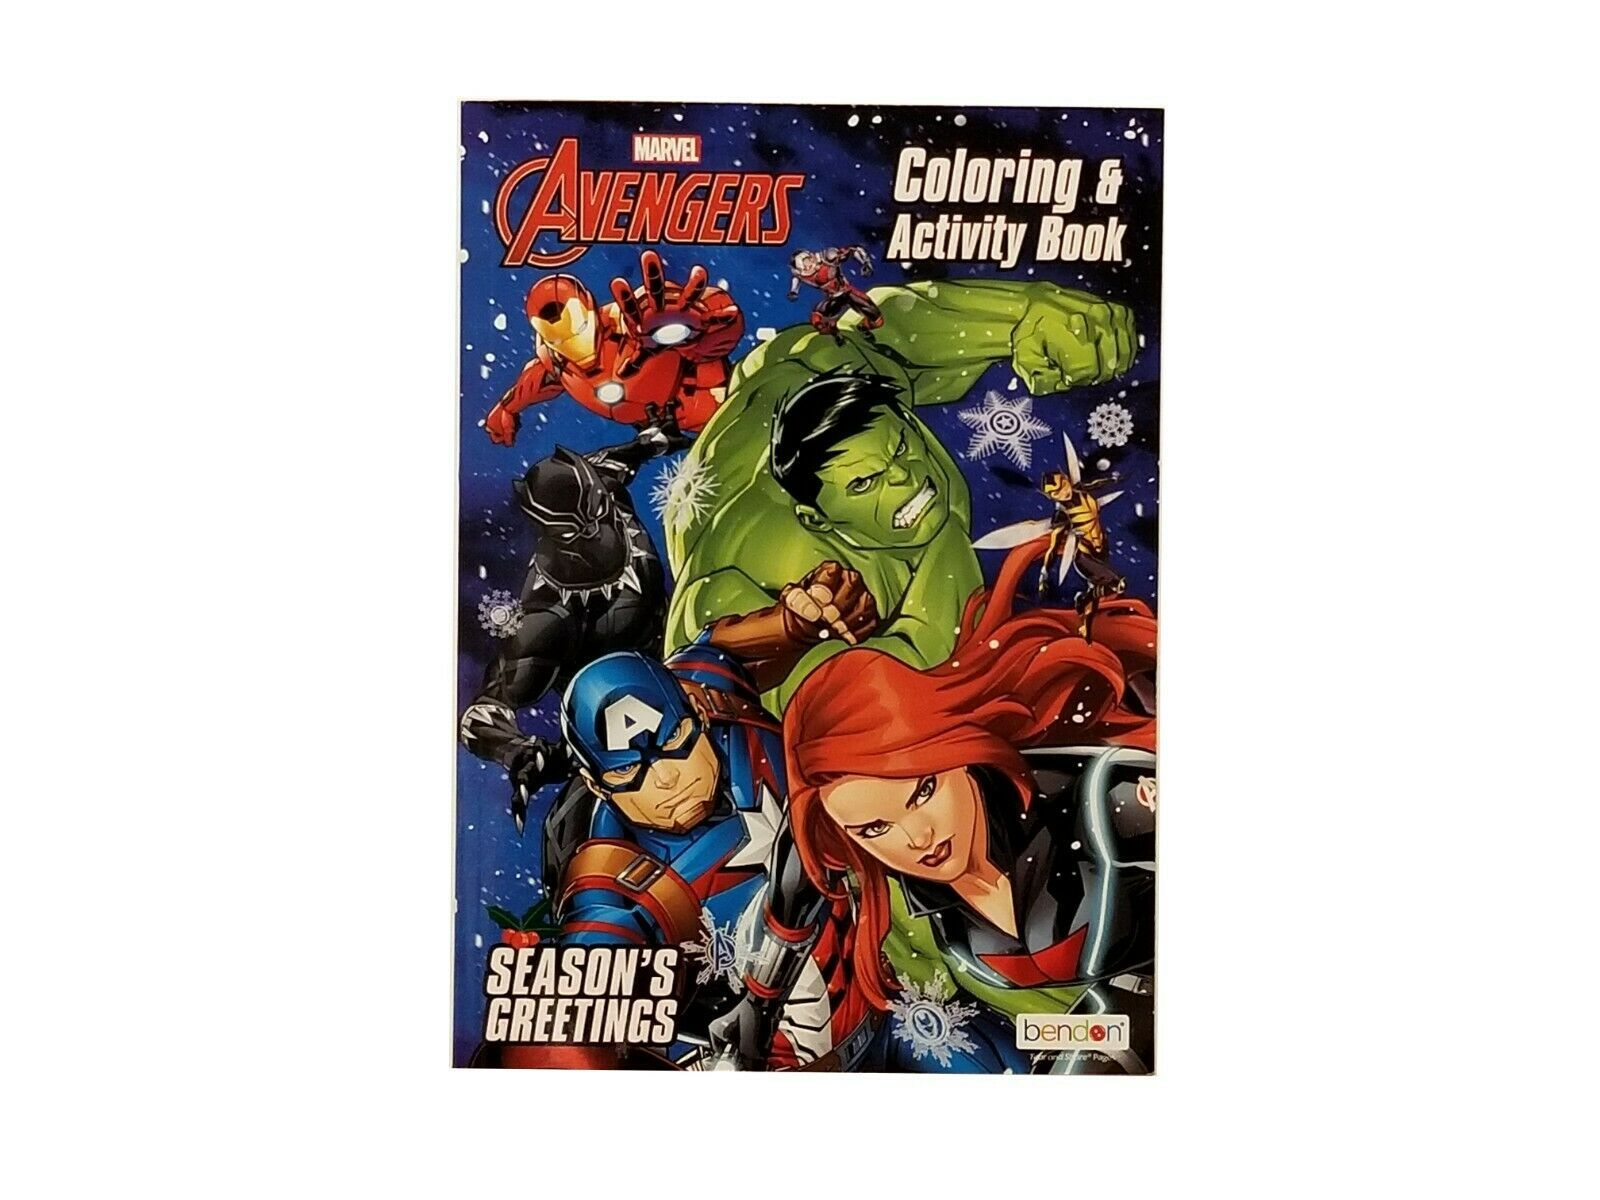 Marvel's Avengers Coloring & Activity Book - Season's Greetings Holiday Edition